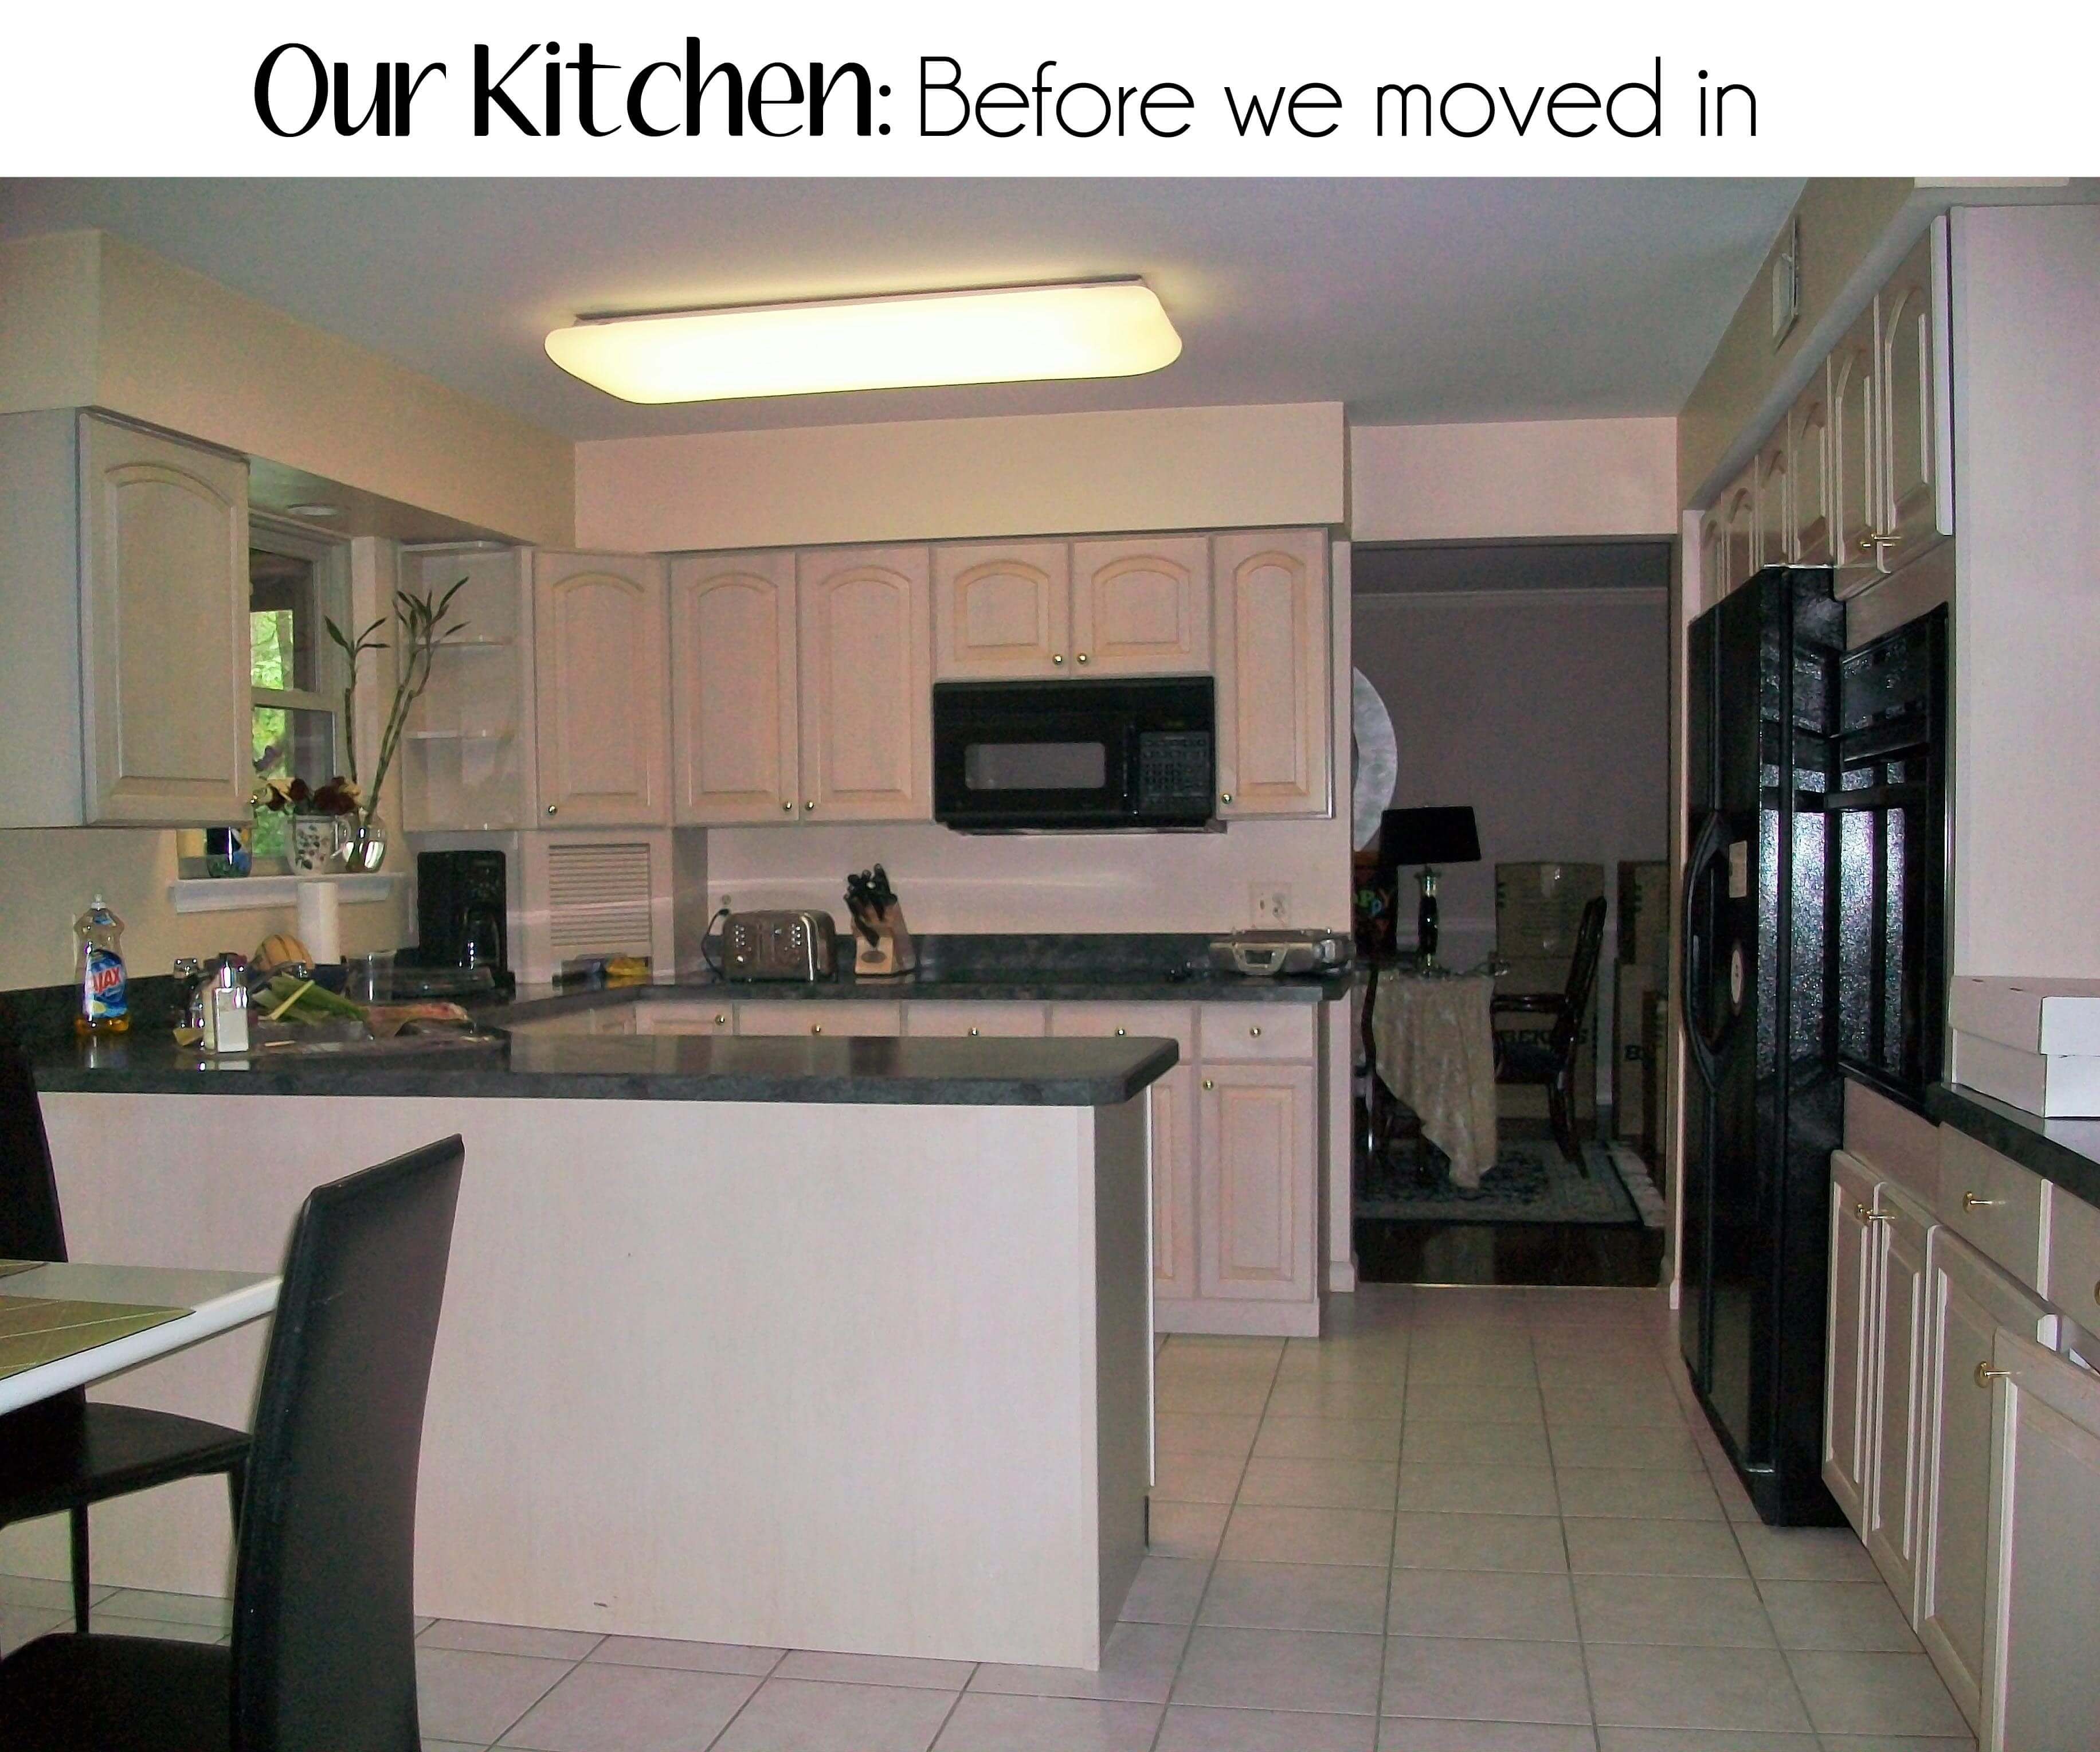 Our Kitchen Before We Moved In